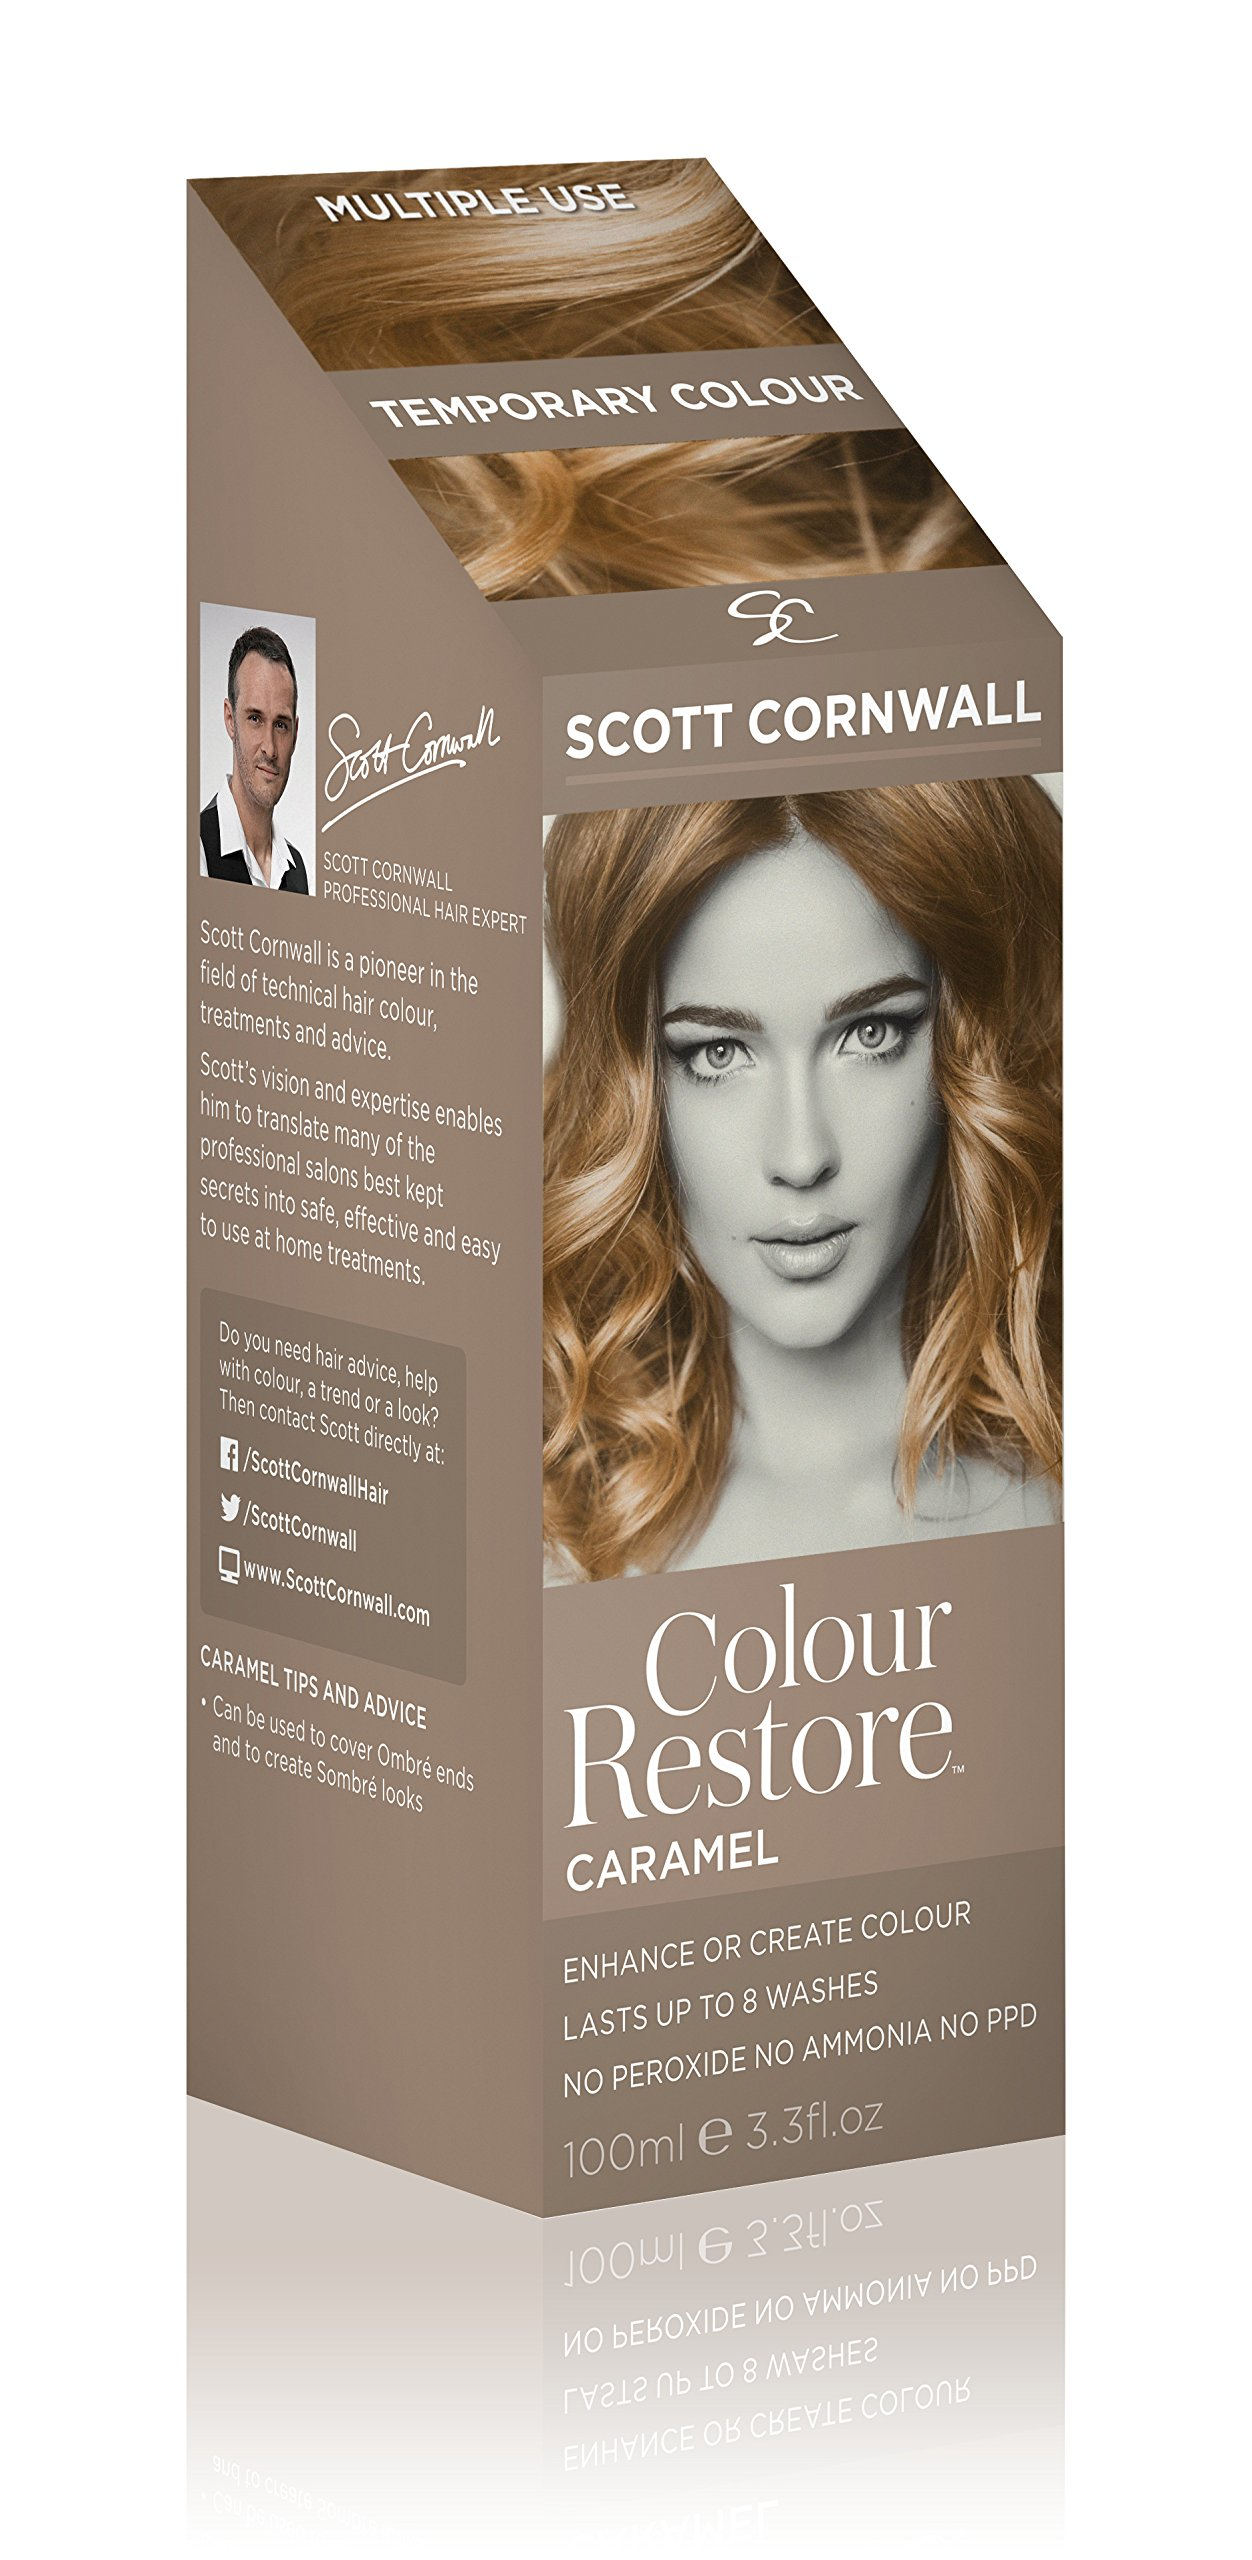 Scott Cornwall Colour Restore Caramel Temporary Toner Dye - Create Warm Light Brown Sombre Tones - PPD Peroxide Free Vegan Friendly Deep Conditioner Grey Cover Touch-Up for Blonde or Brunette Bases